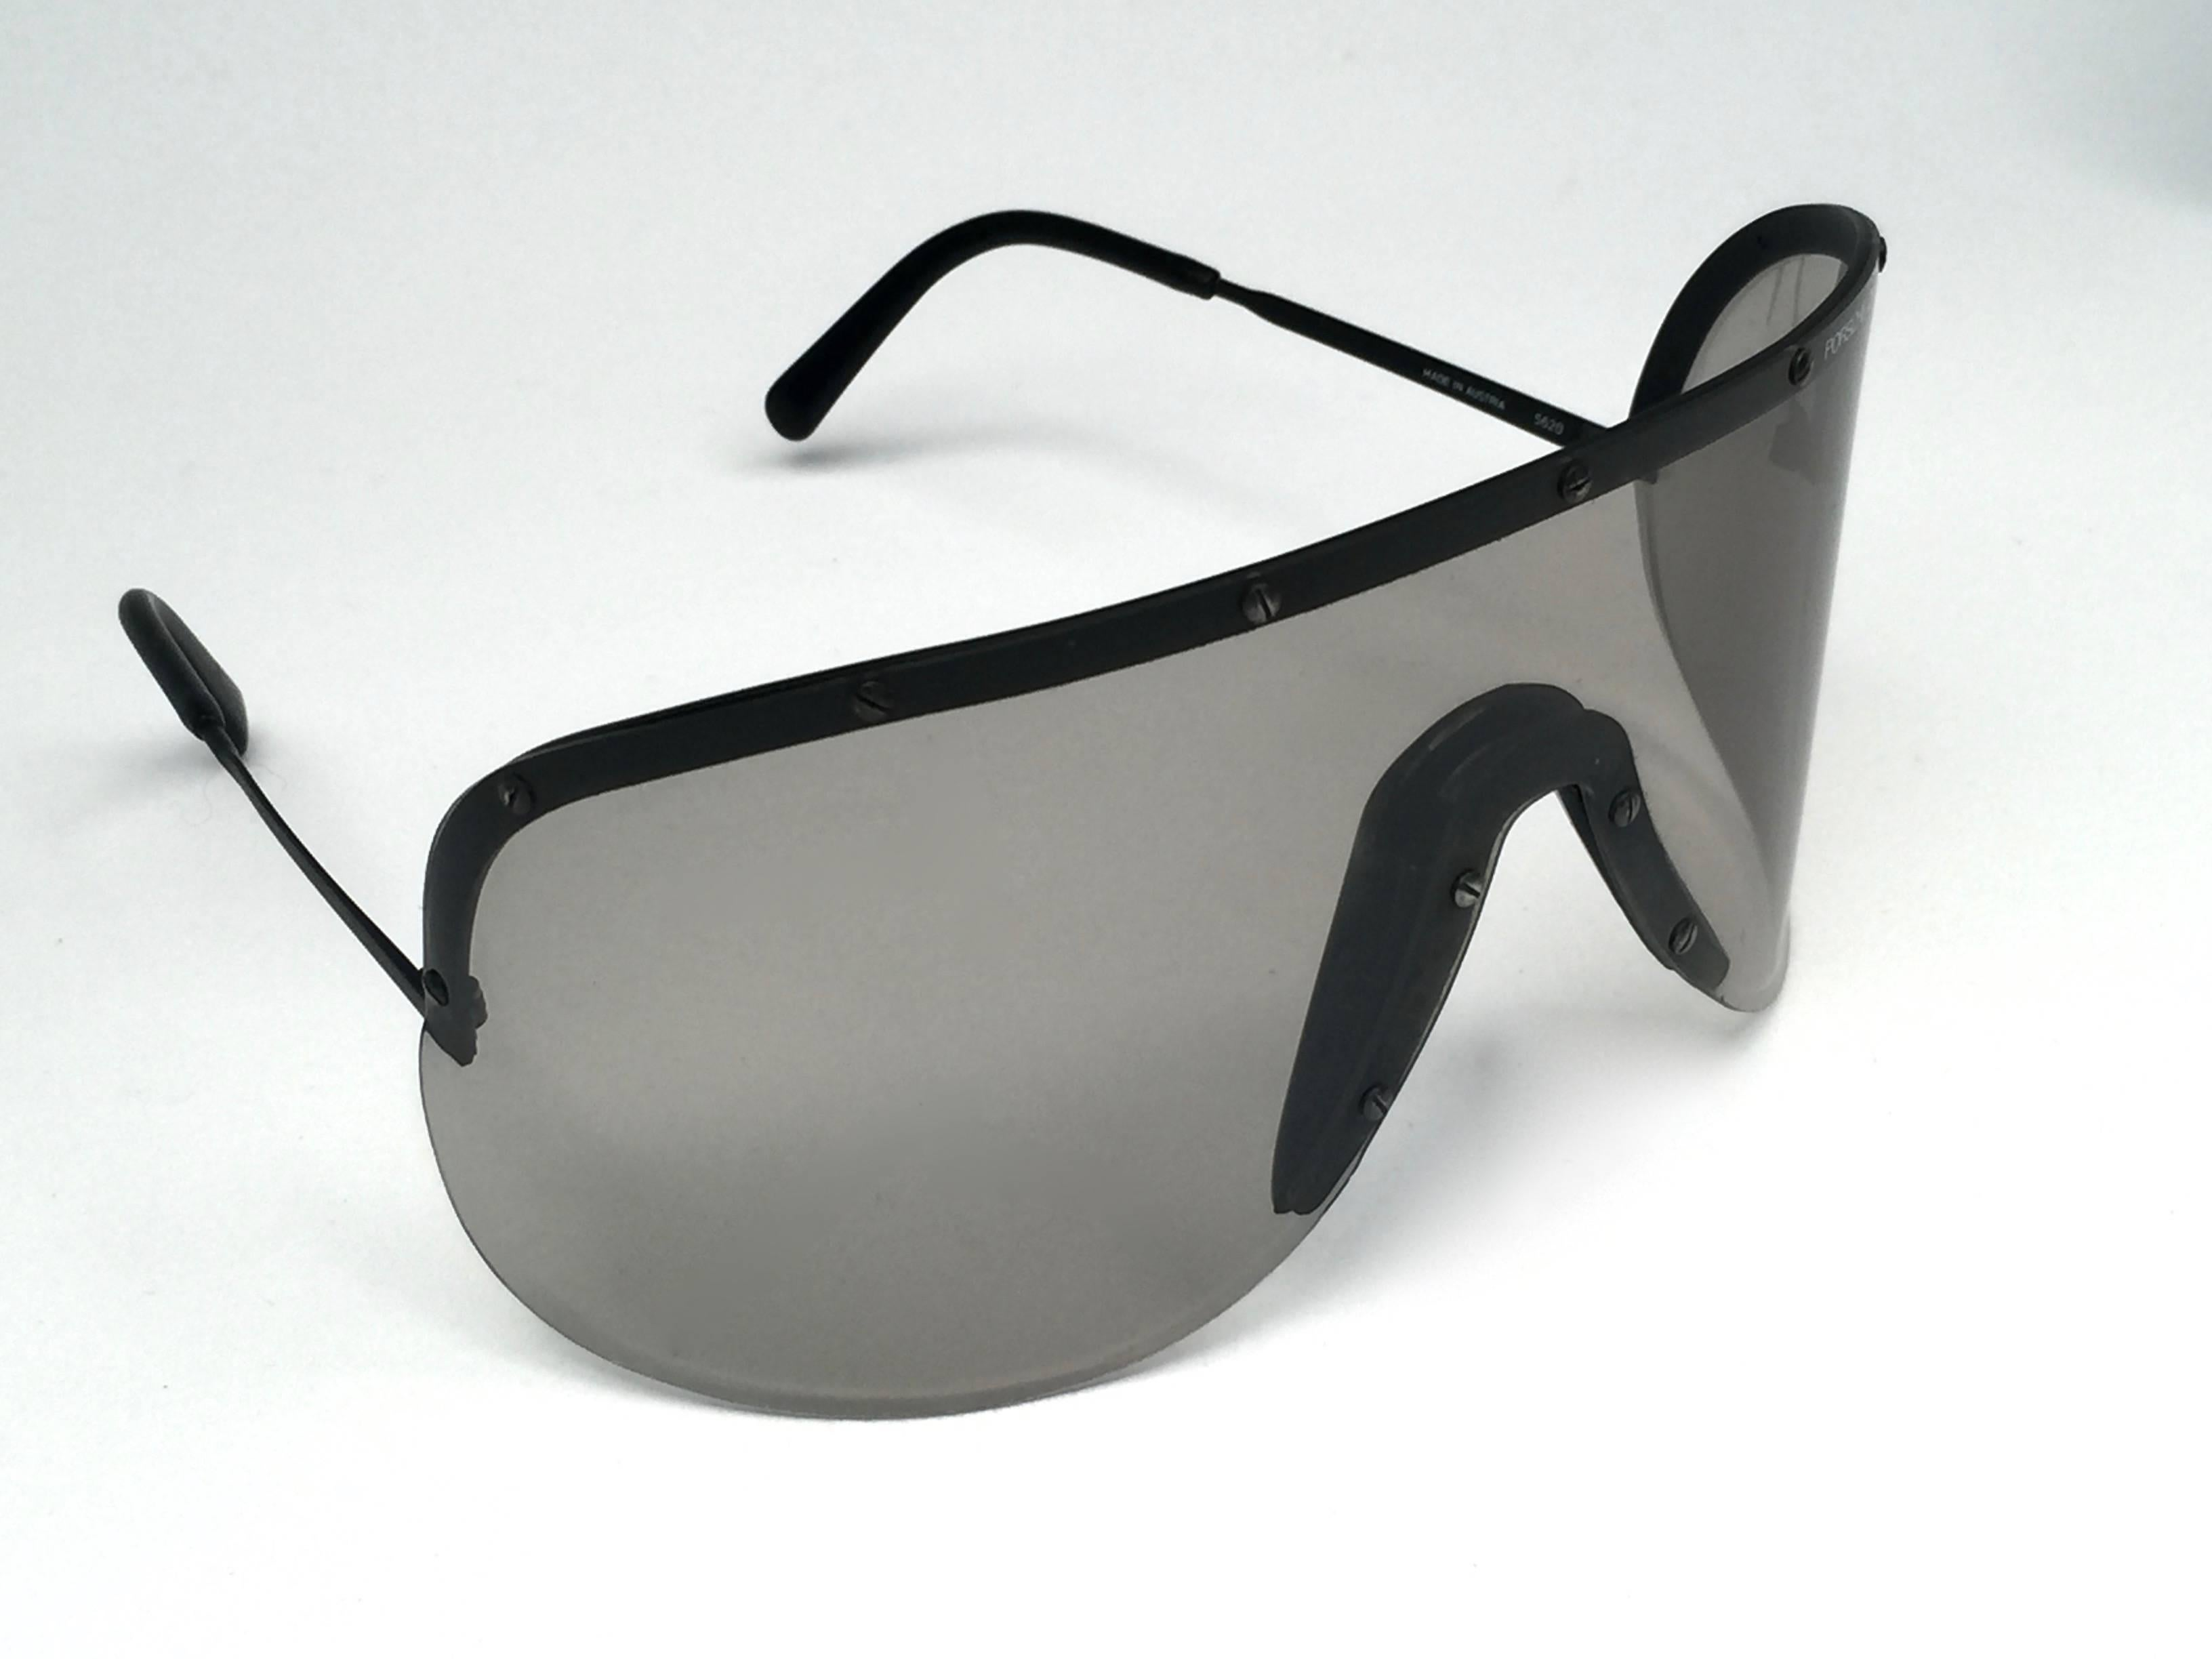 fac3be3442 New Vintage Porsche Design 5620 Shield Collector Item 1980 s Yoko Ono  Sunglasses For Sale at 1stdibs